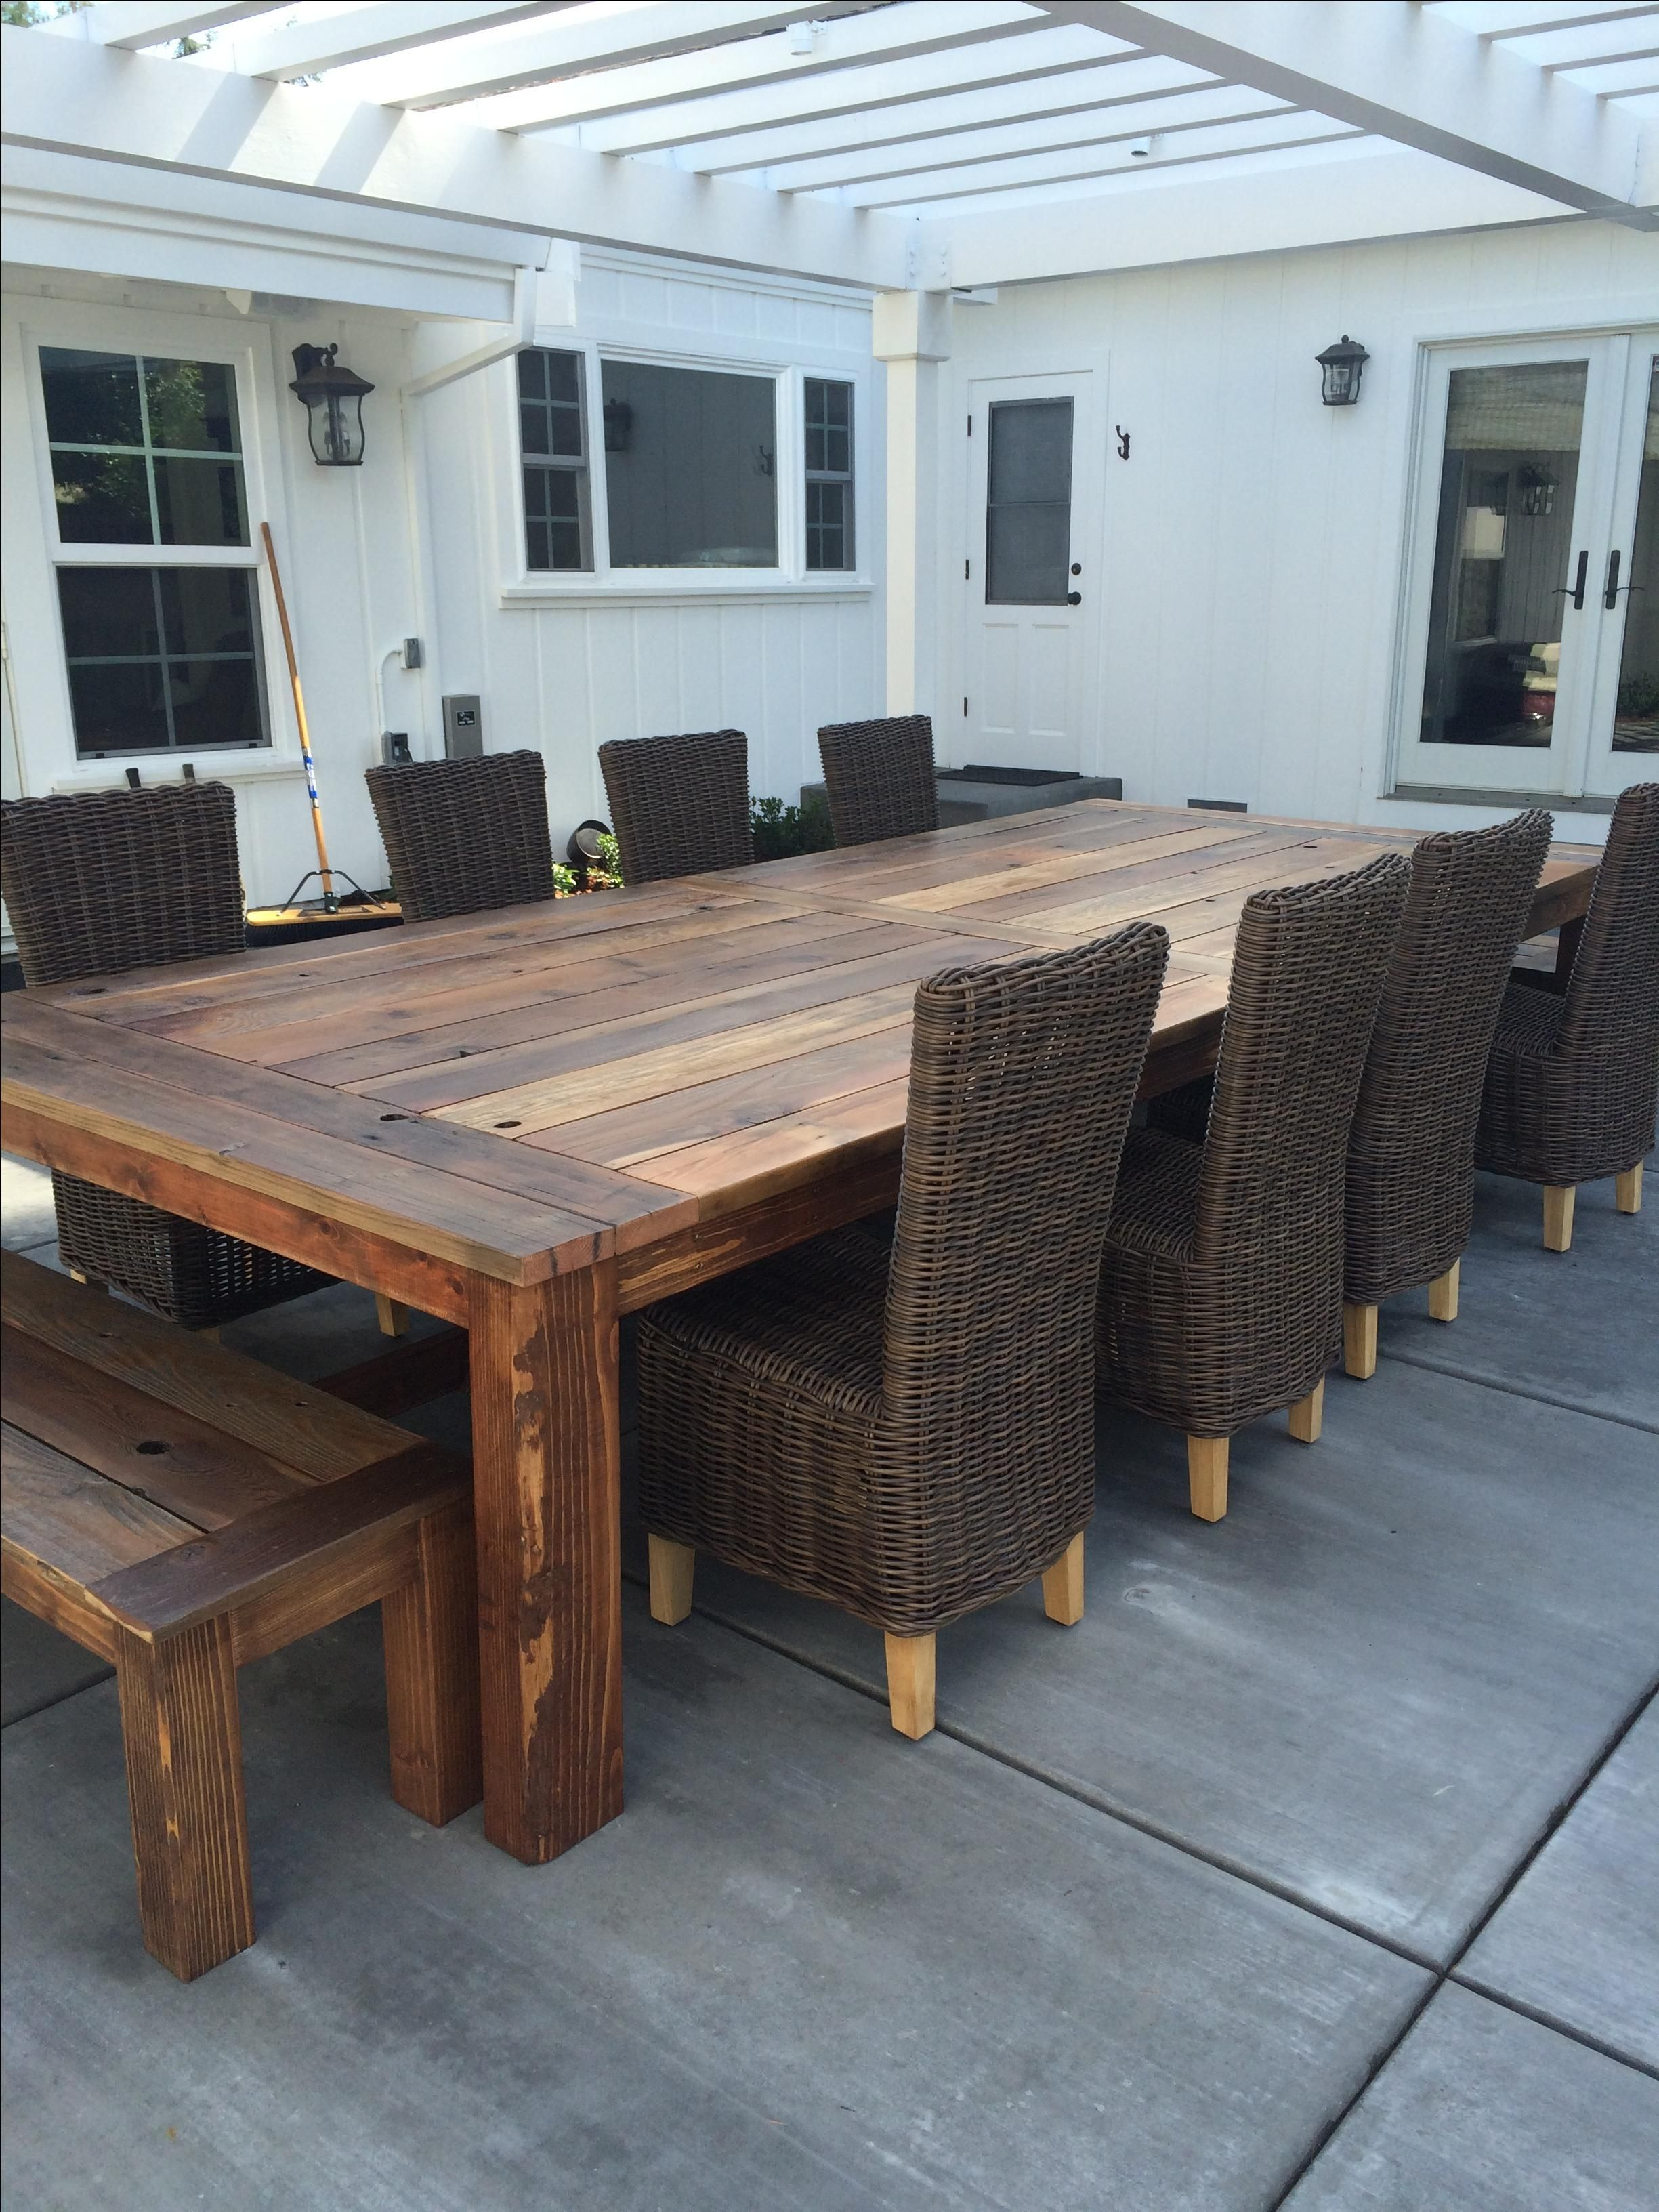 Handmade Reclaimed Wood Farm Table Outdoor Or Indoor By Urban Mining Company